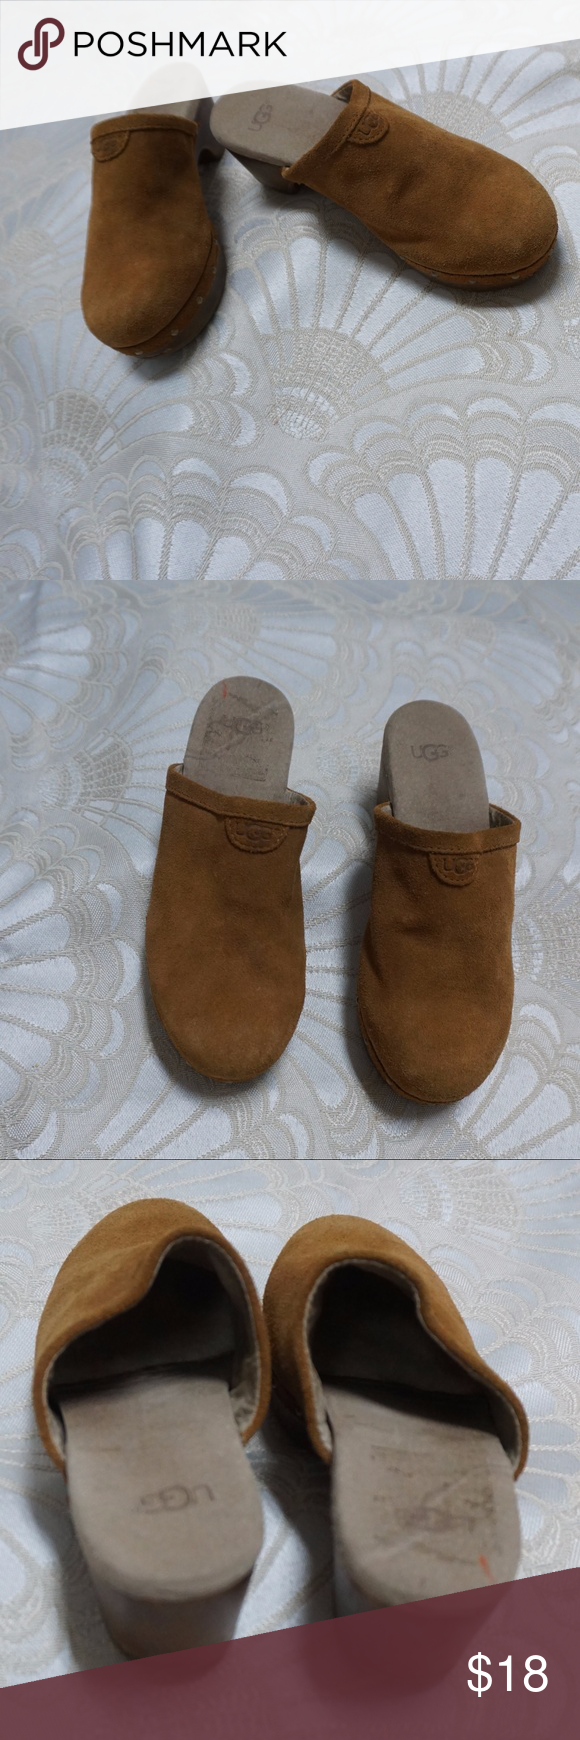 UGG Australia | Evie Clogs Sn 3284 Thank you for checking out my Closet Size: